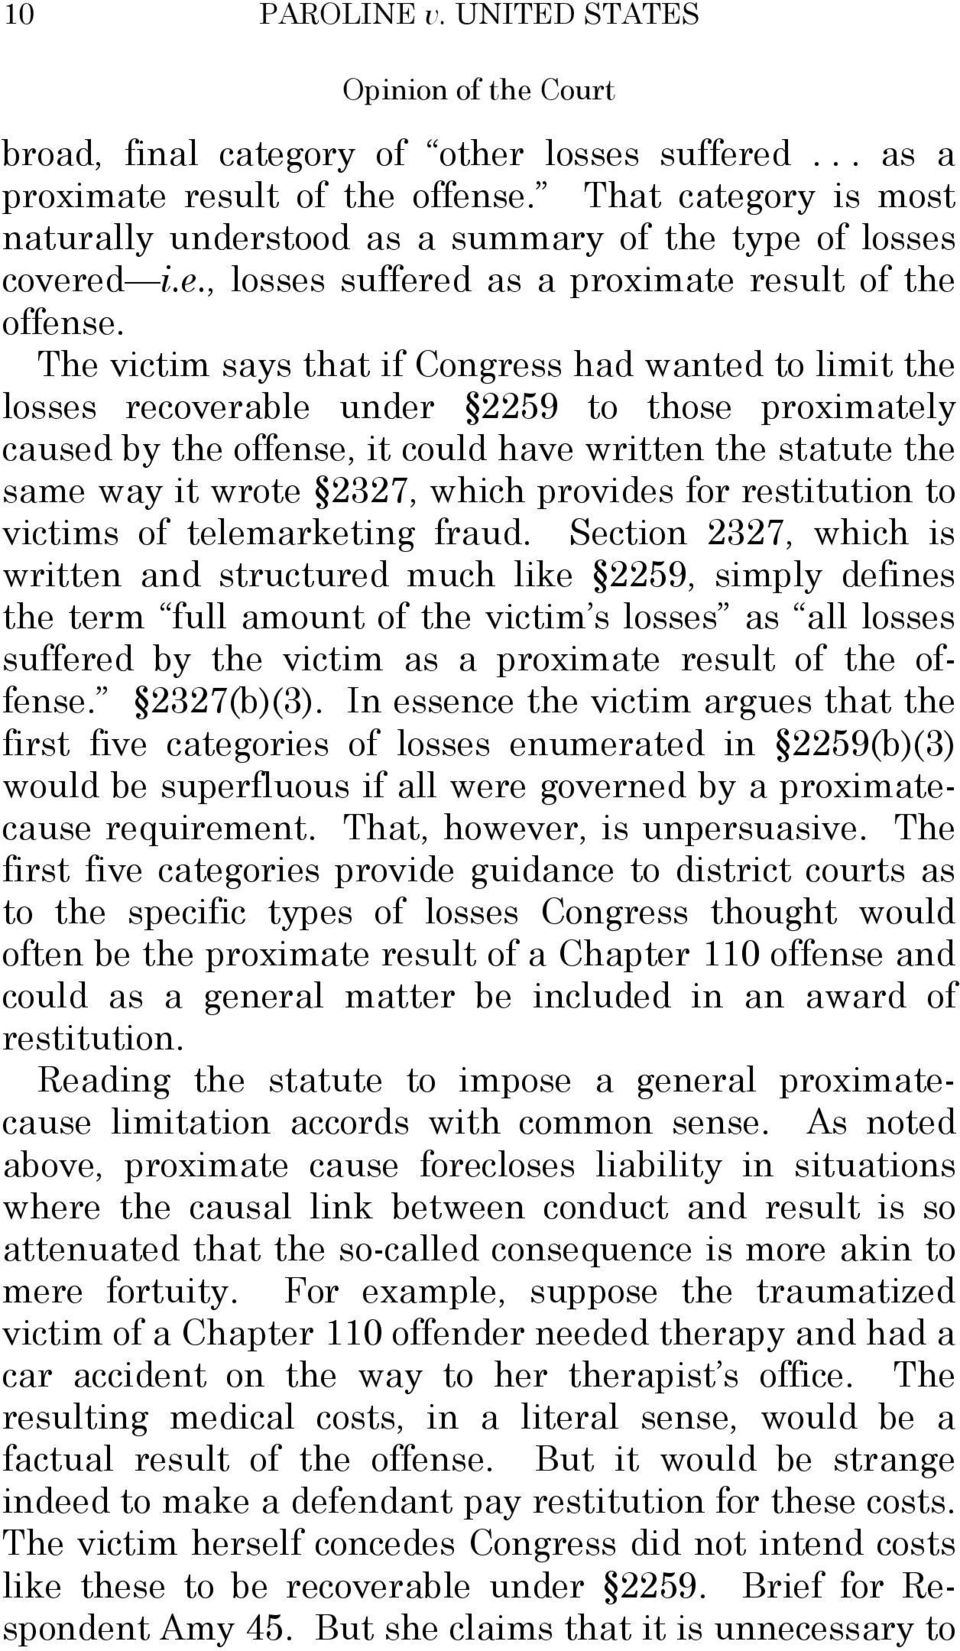 The victim says that if Congress had wanted to limit the losses recoverable under 2259 to those proximately caused by the offense, it could have written the statute the same way it wrote 2327, which